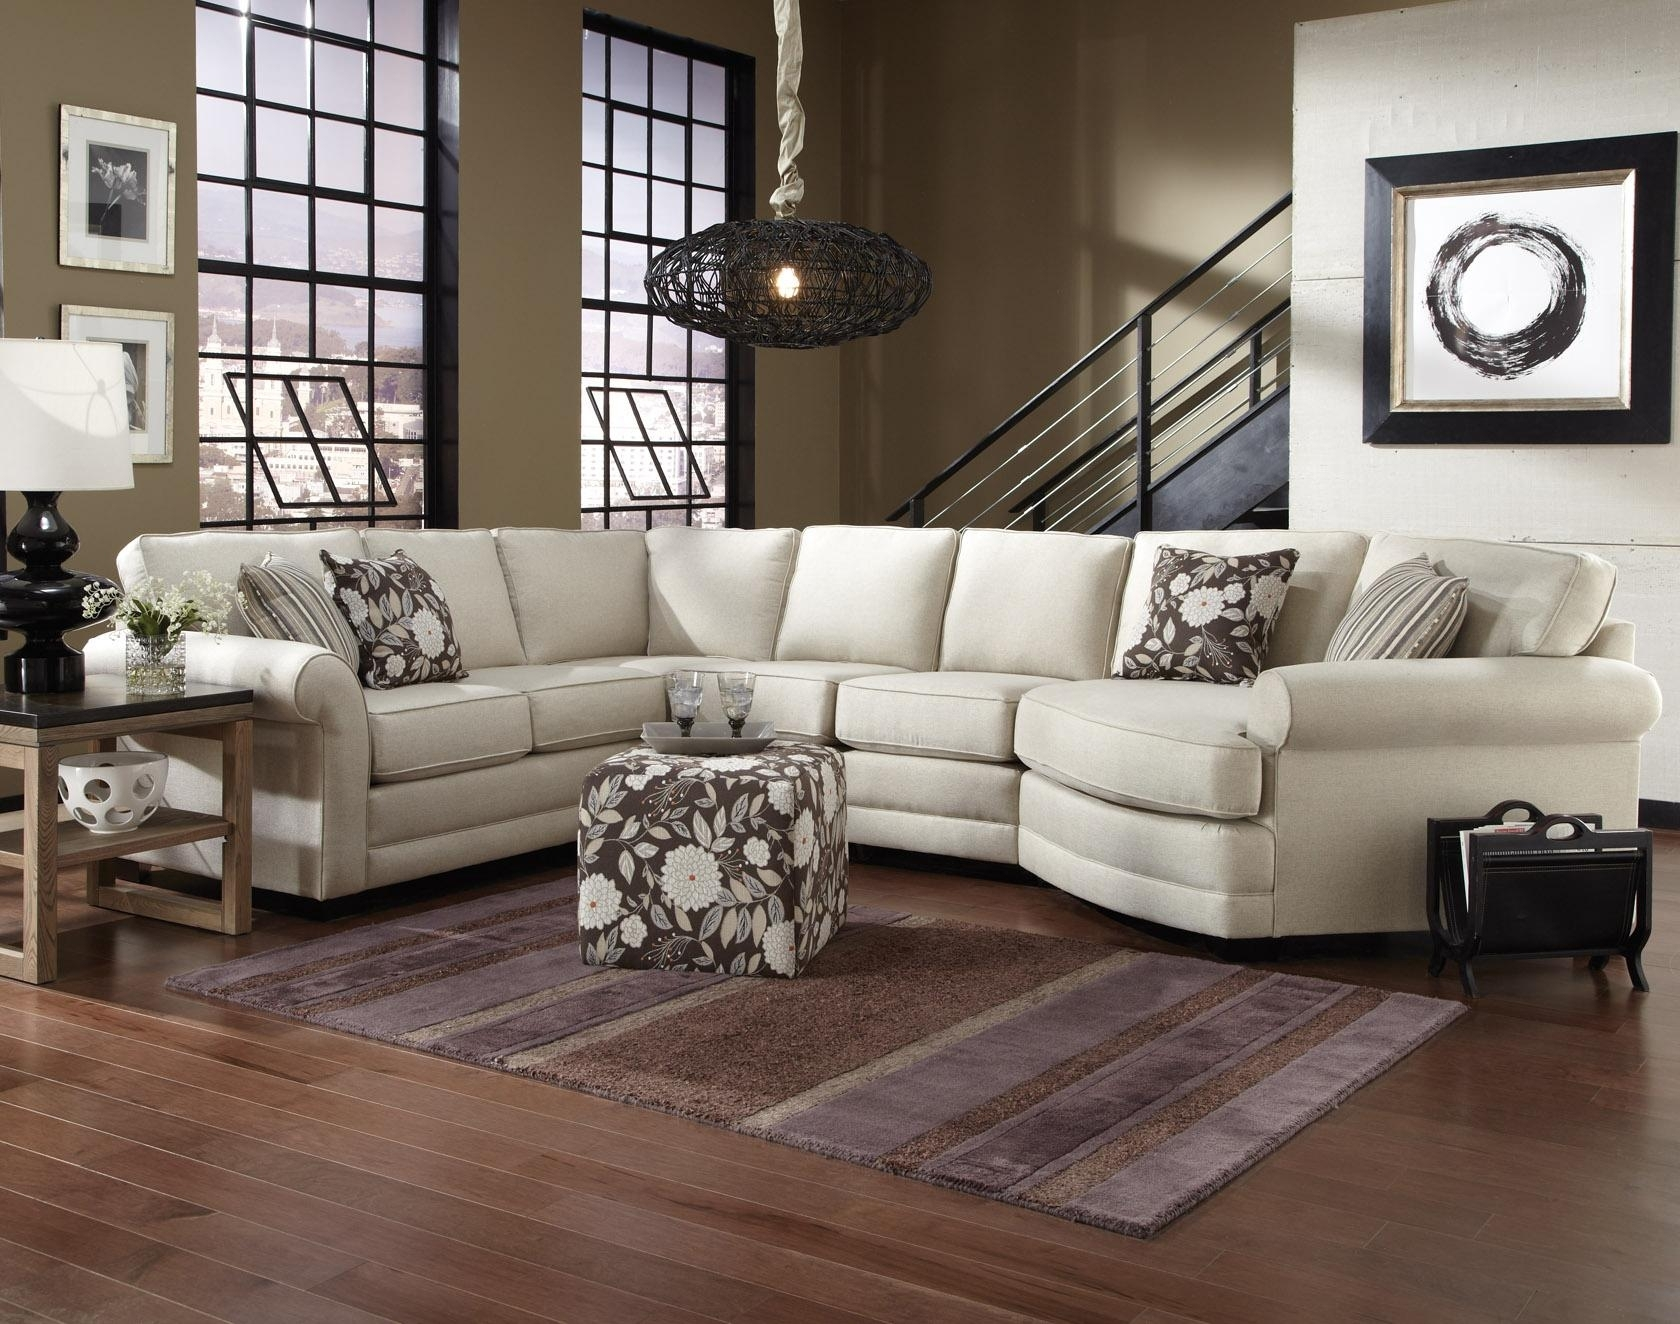 England Brantley 5 Seat Sectional Sofa With Cuddler – Ahfa – Sofa Throughout Wichita Ks Sectional Sofas (Image 8 of 10)